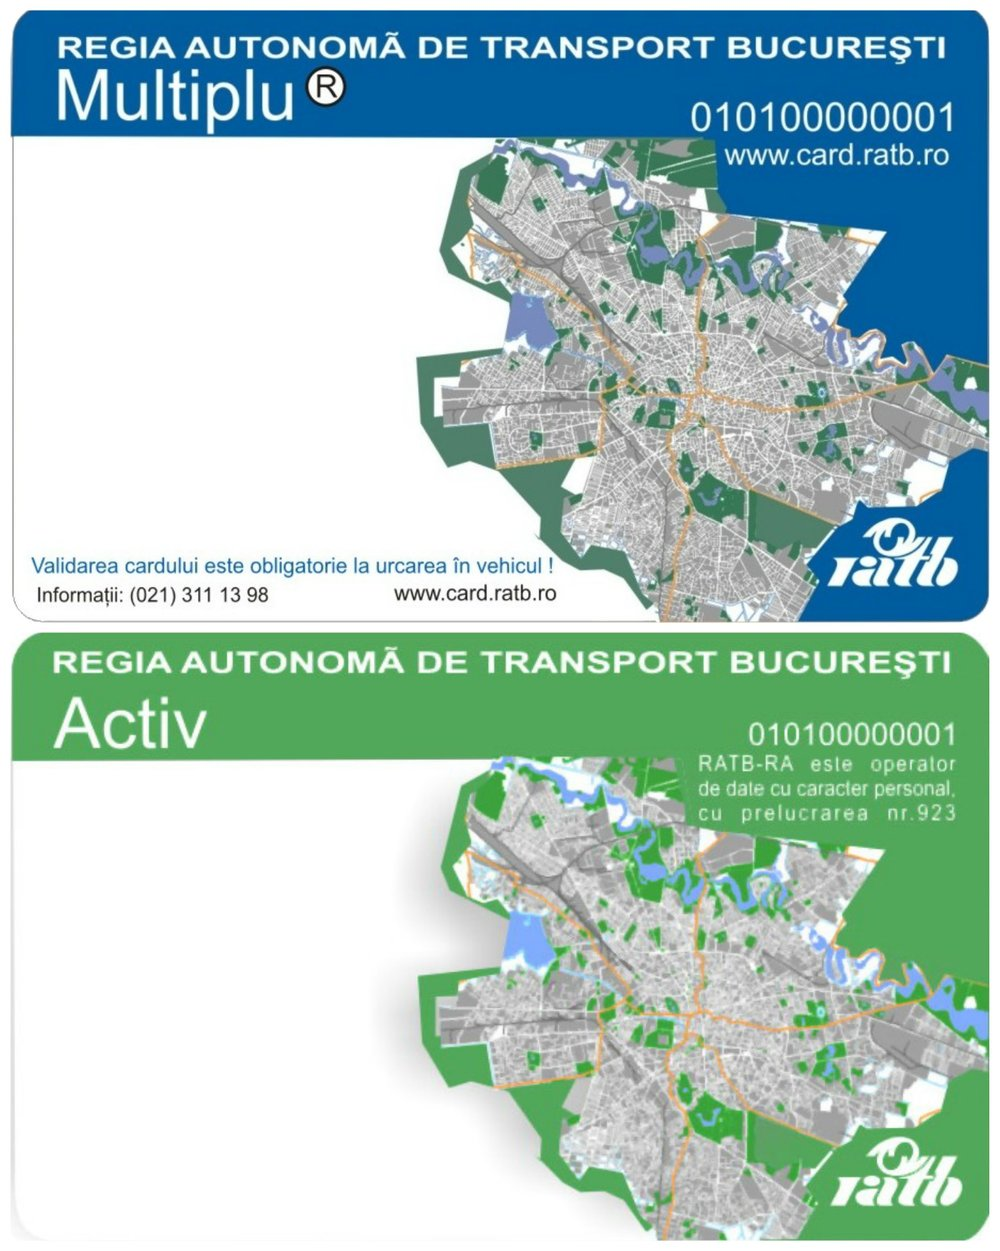 screw_the_average_romania_bucharest_public_transportation_ratb_multtplu_activ_card.jpg